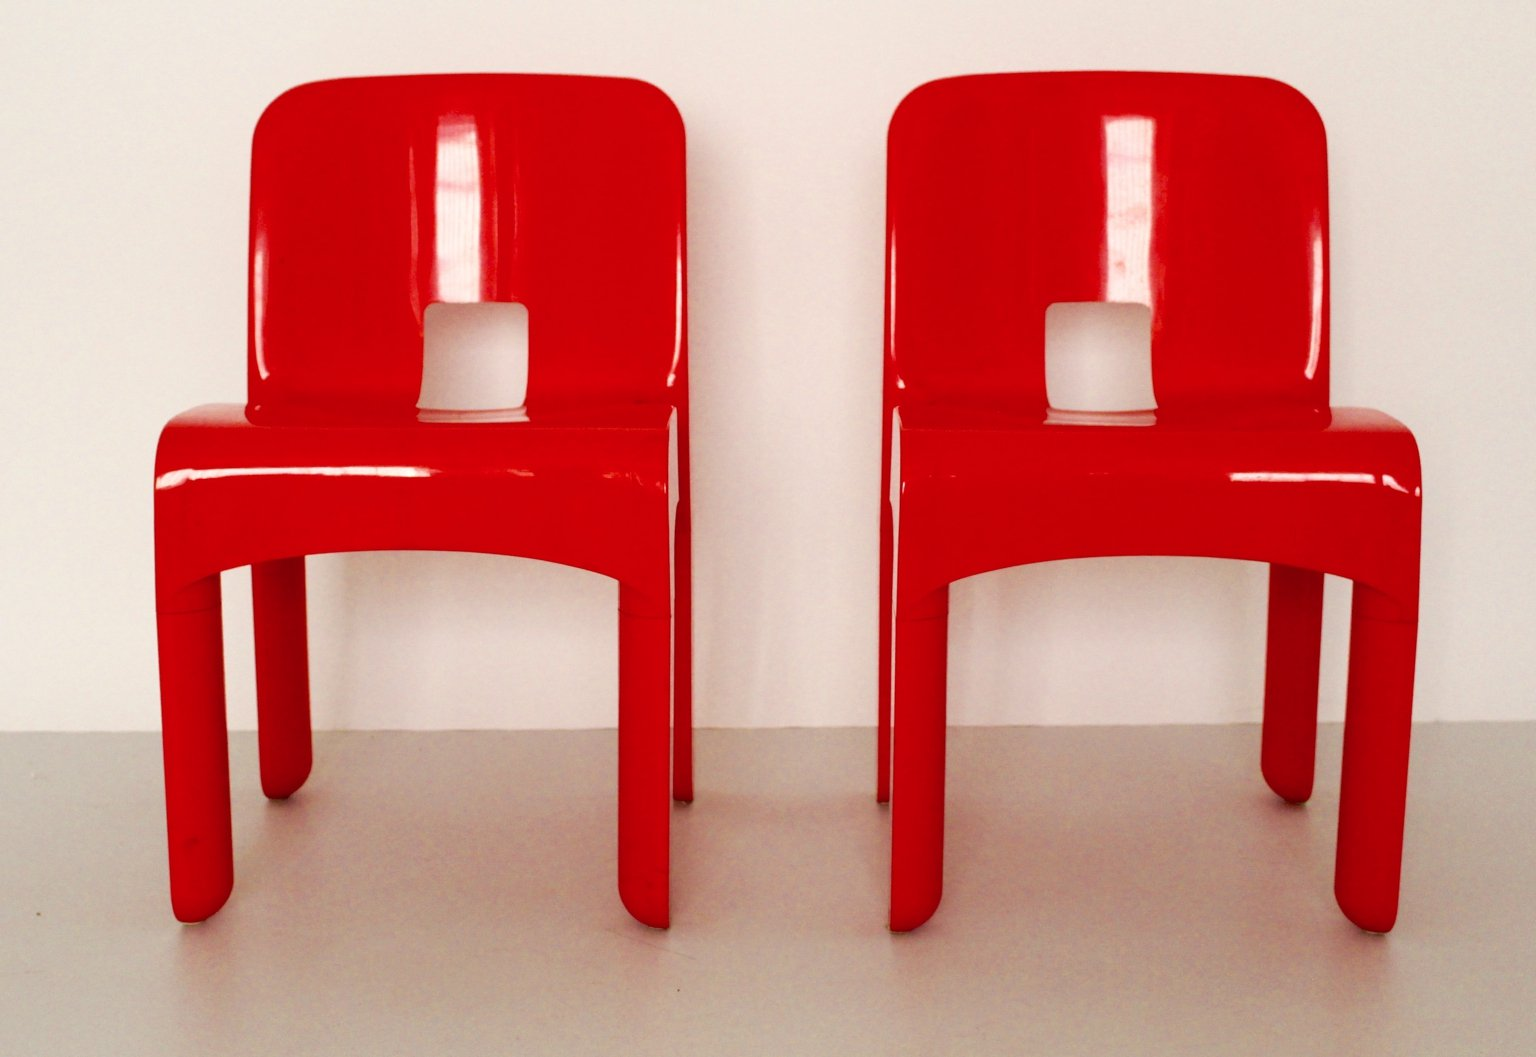 Merveilleux Model 4860 Universale Plastic Chairs By Joe Colombo For Kartell, 1960s, Set  Of 2 For Sale At Pamono